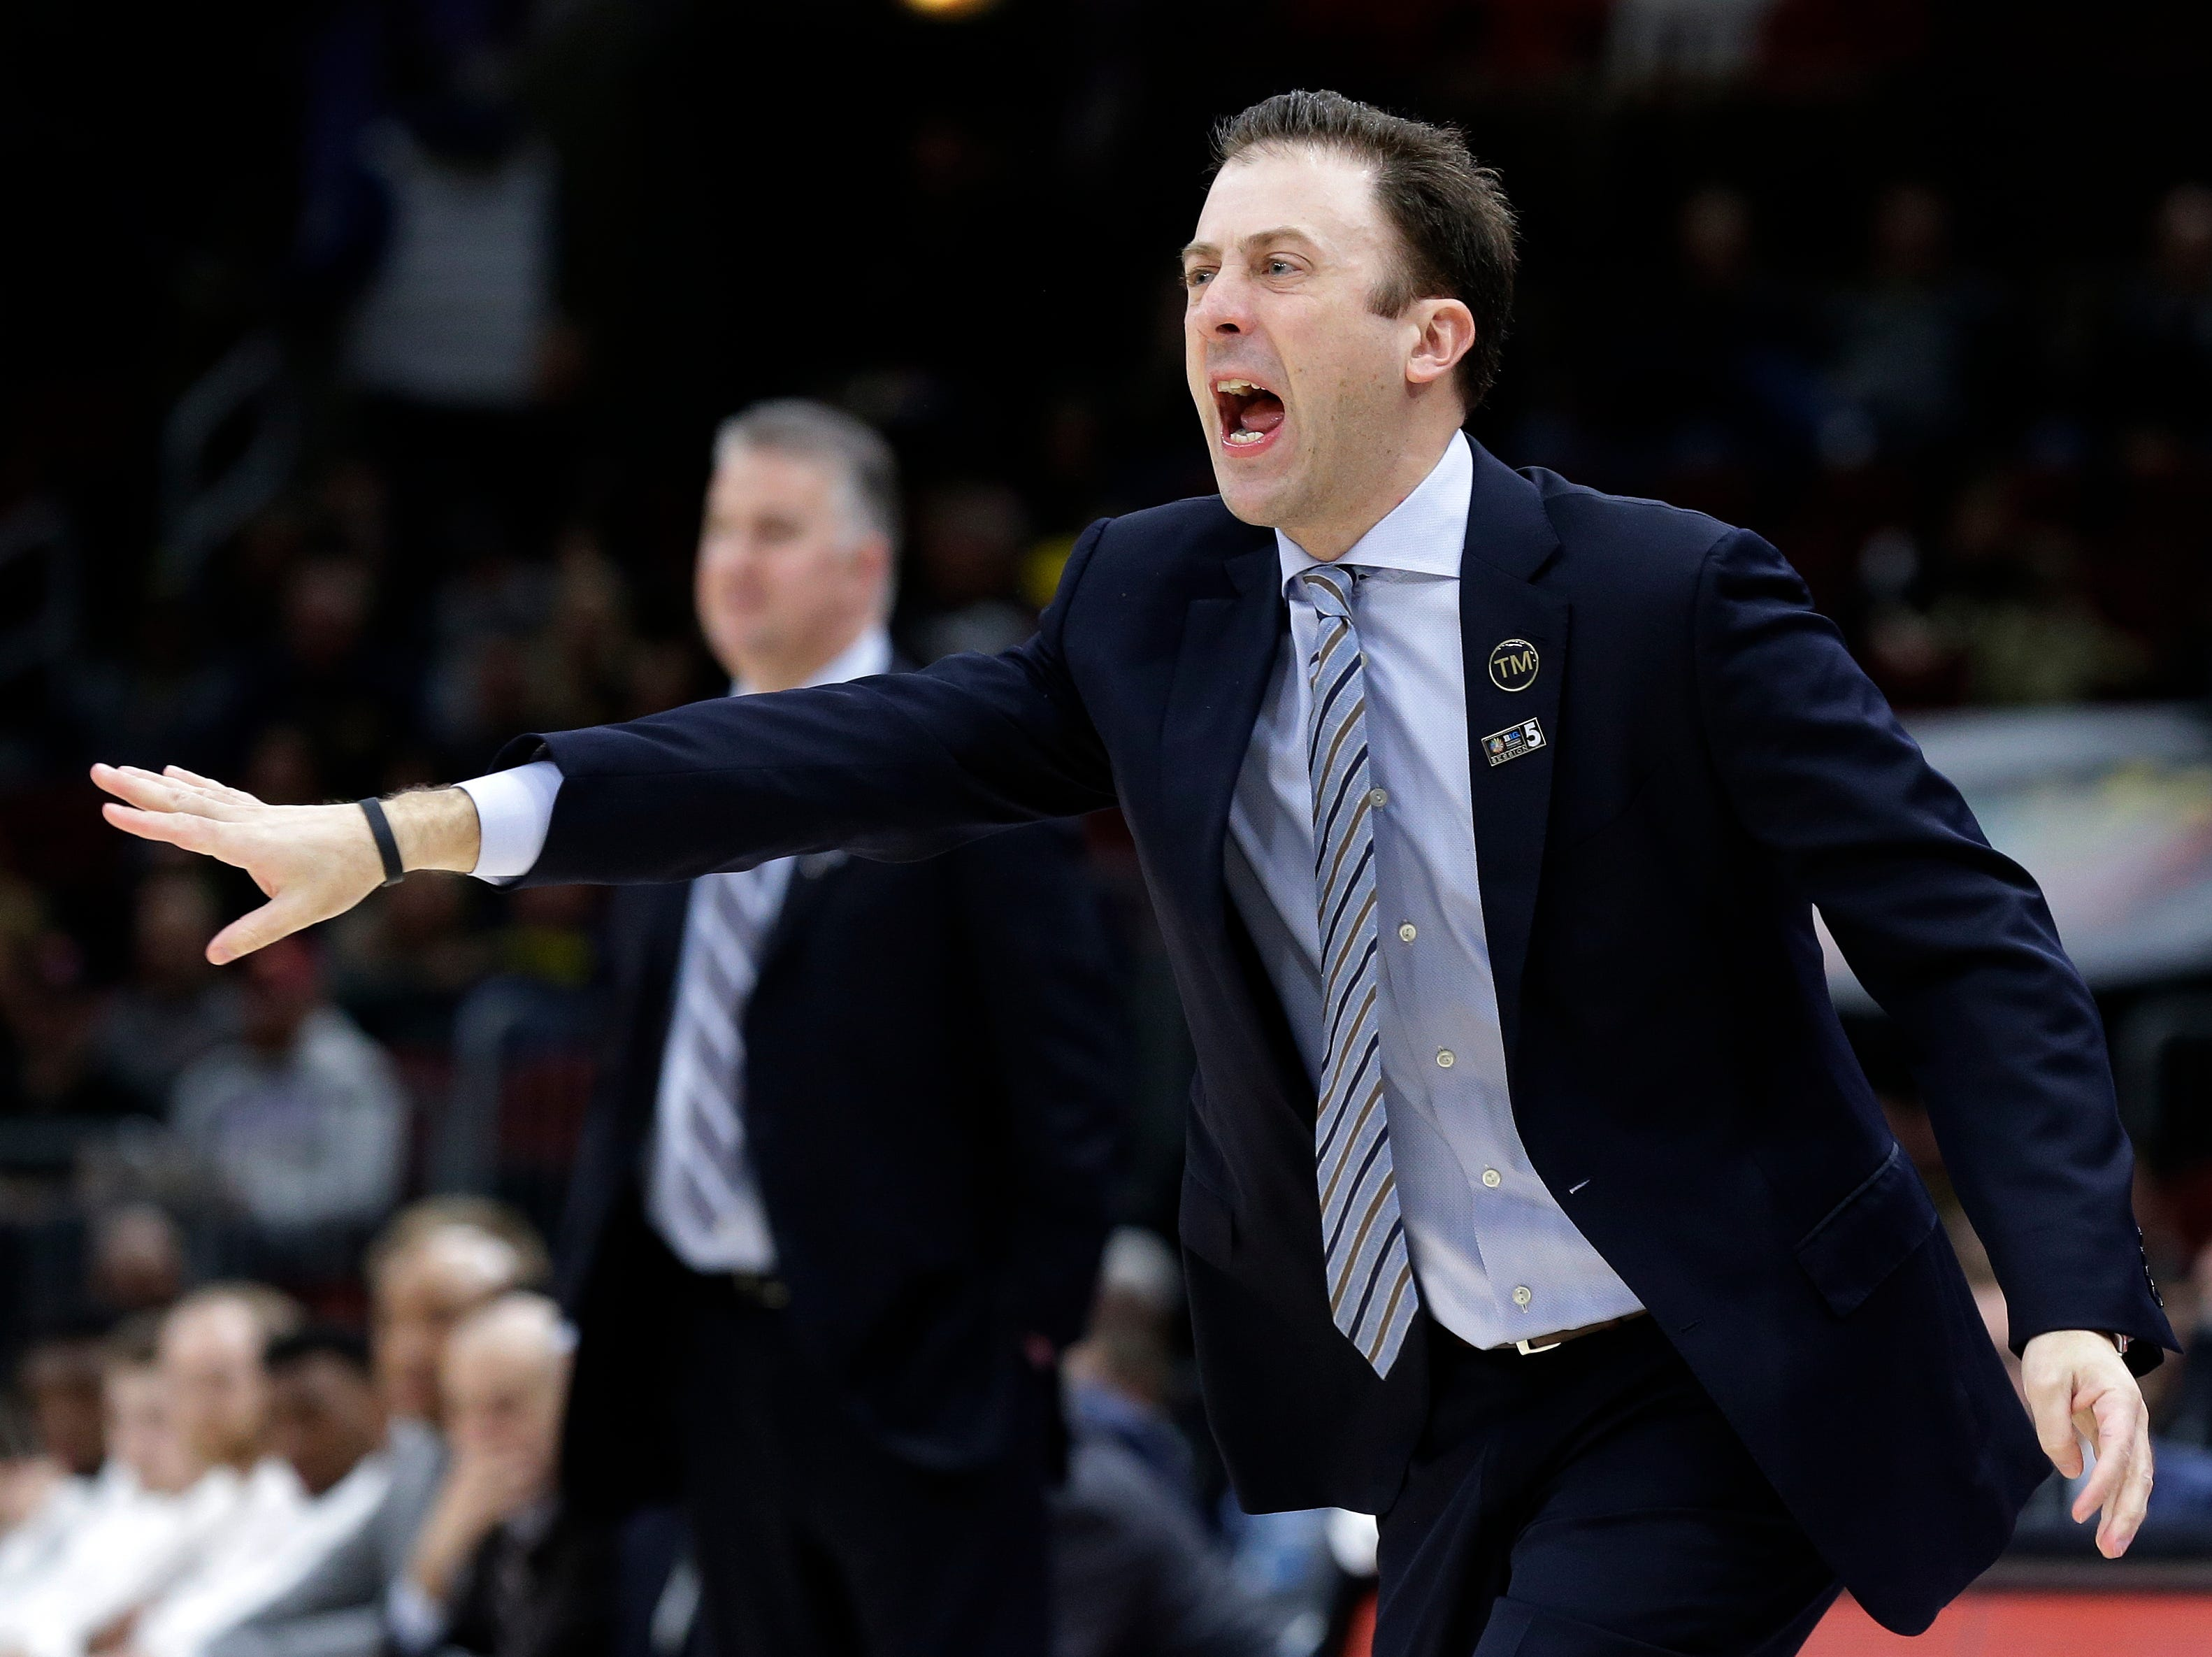 Minnesota head coach Richard Pitino directs his team during the first half of an NCAA college basketball game against Purdue in the quarterfinals of the Big Ten Conference tournament, Friday, March 15, 2019, in Chicago. (AP Photo/Kiichiro Sato)